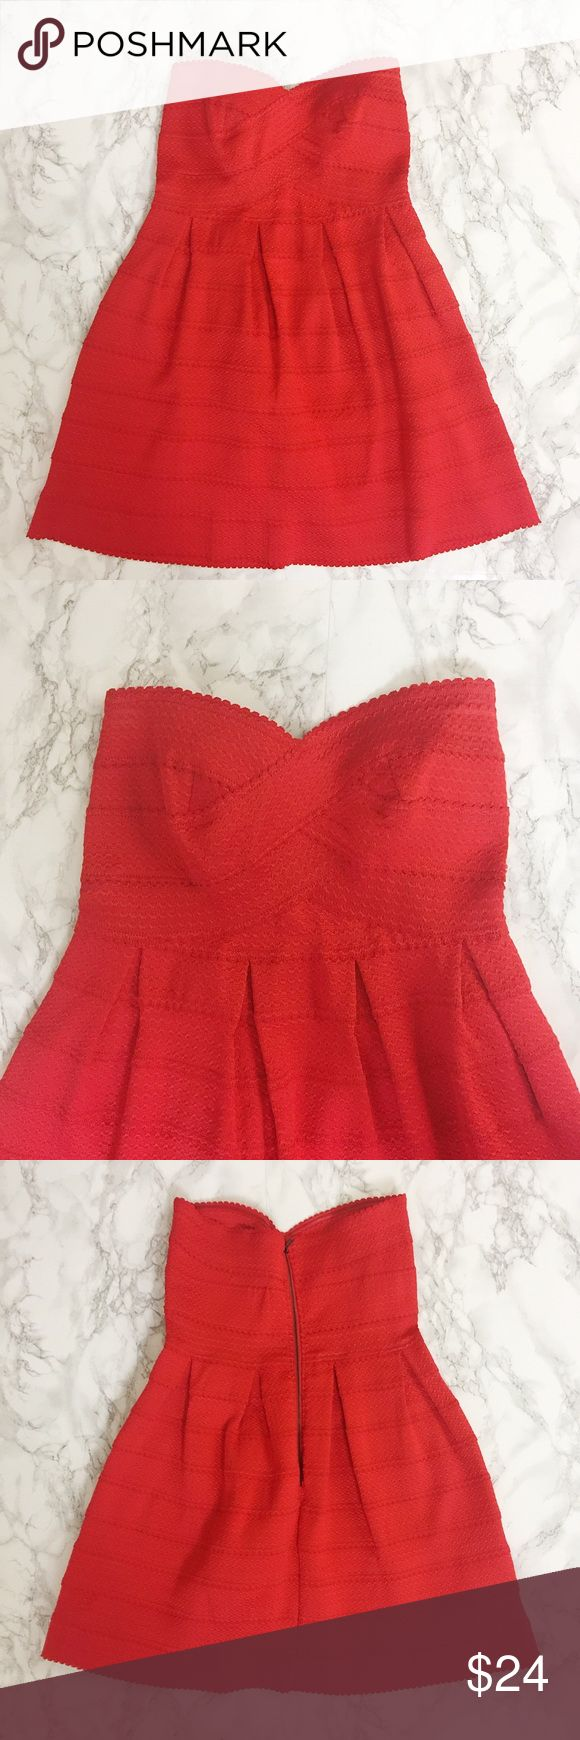 Sans Souci Red Strapless Cocktail Dress Red bandage dress with plenty of stretch. Sweetheart neckline. Pleated, flared skirt. Very thick material. Not lined. Exposed zipper in back. Sans Souci Dresses Strapless